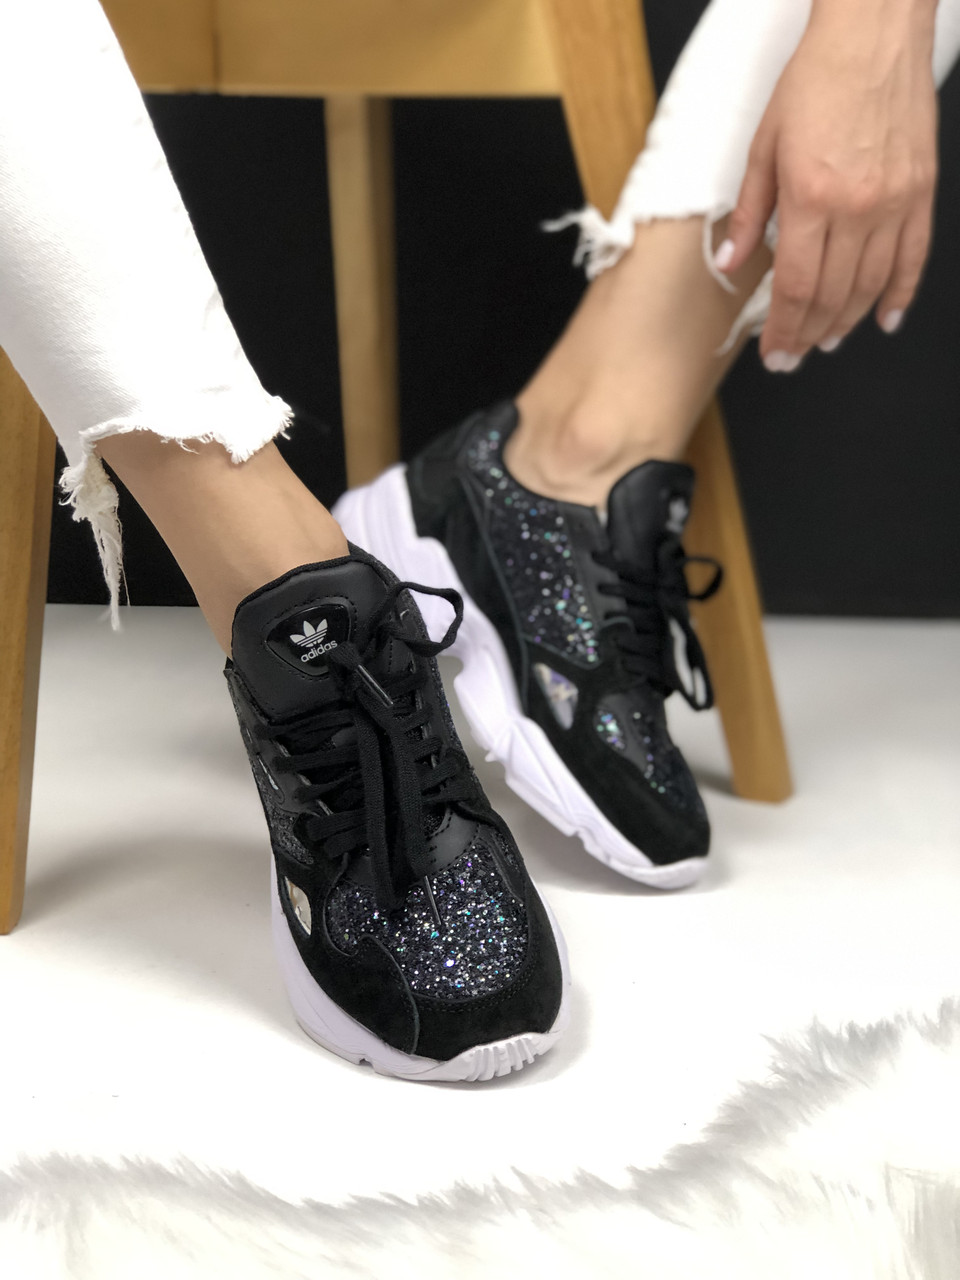 Кроссовки Adidas Falcon Black White Diamond 2